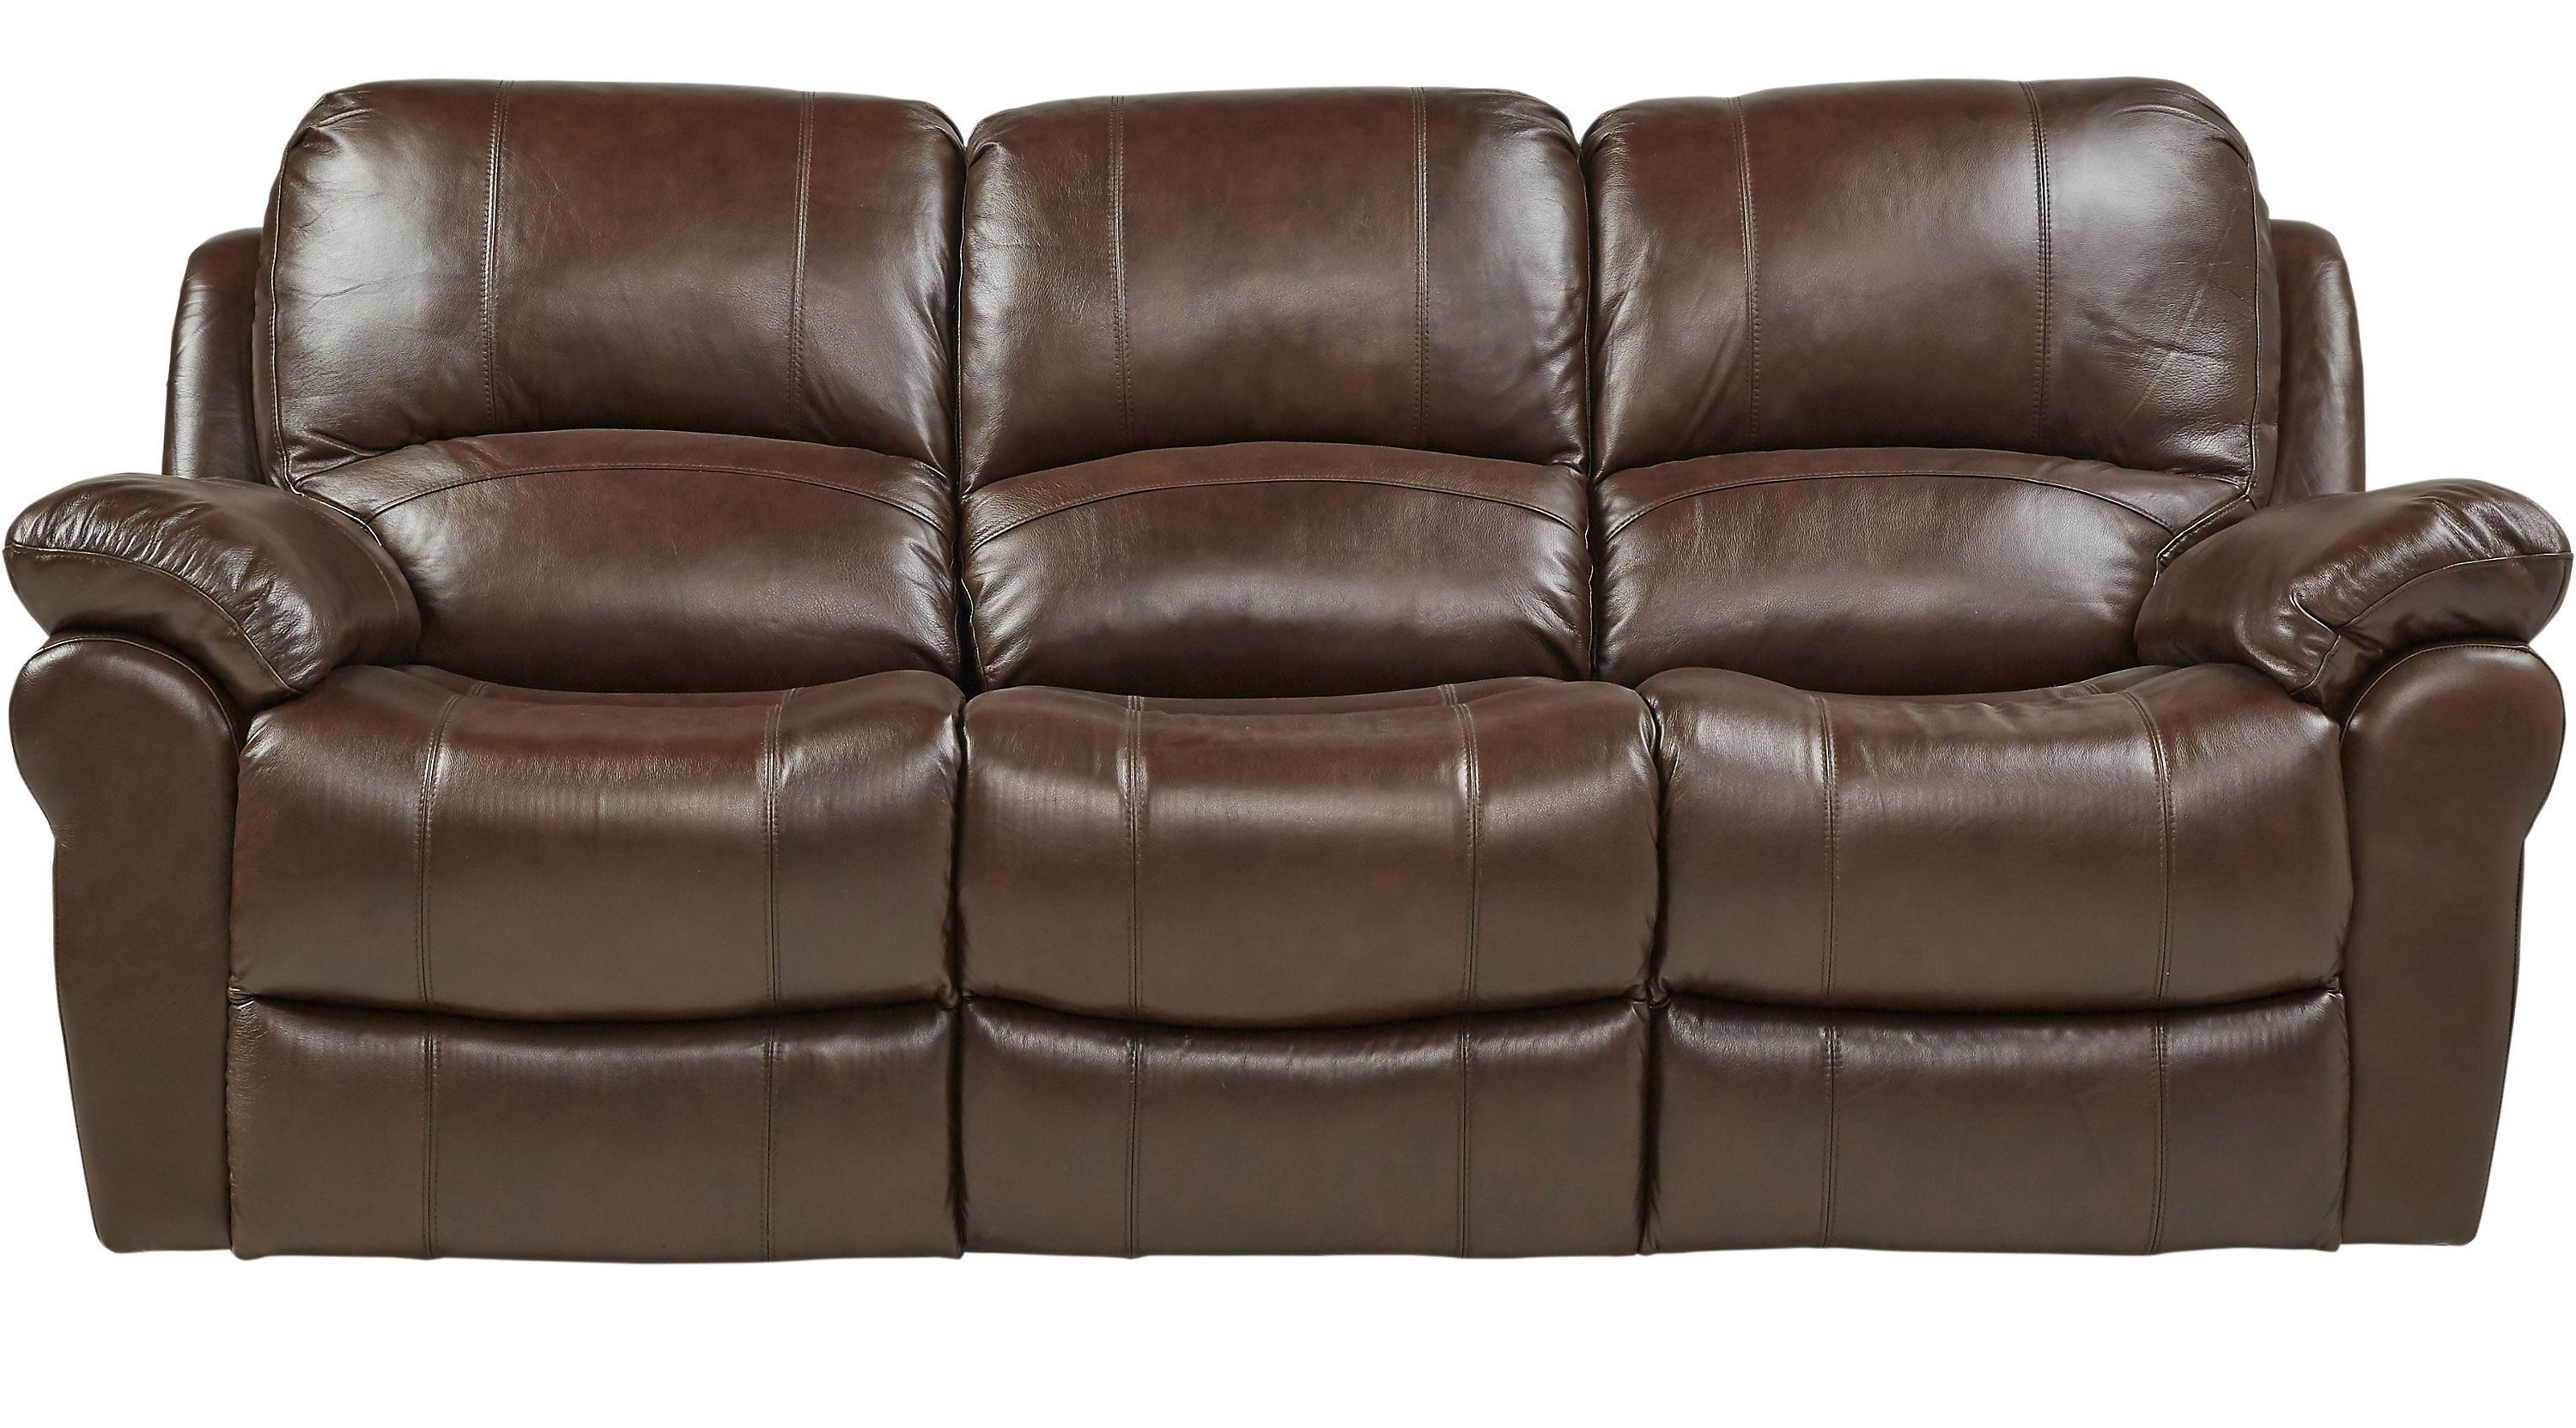 Leather Sofas Rooms To Go Vercelli Brown Leather Power